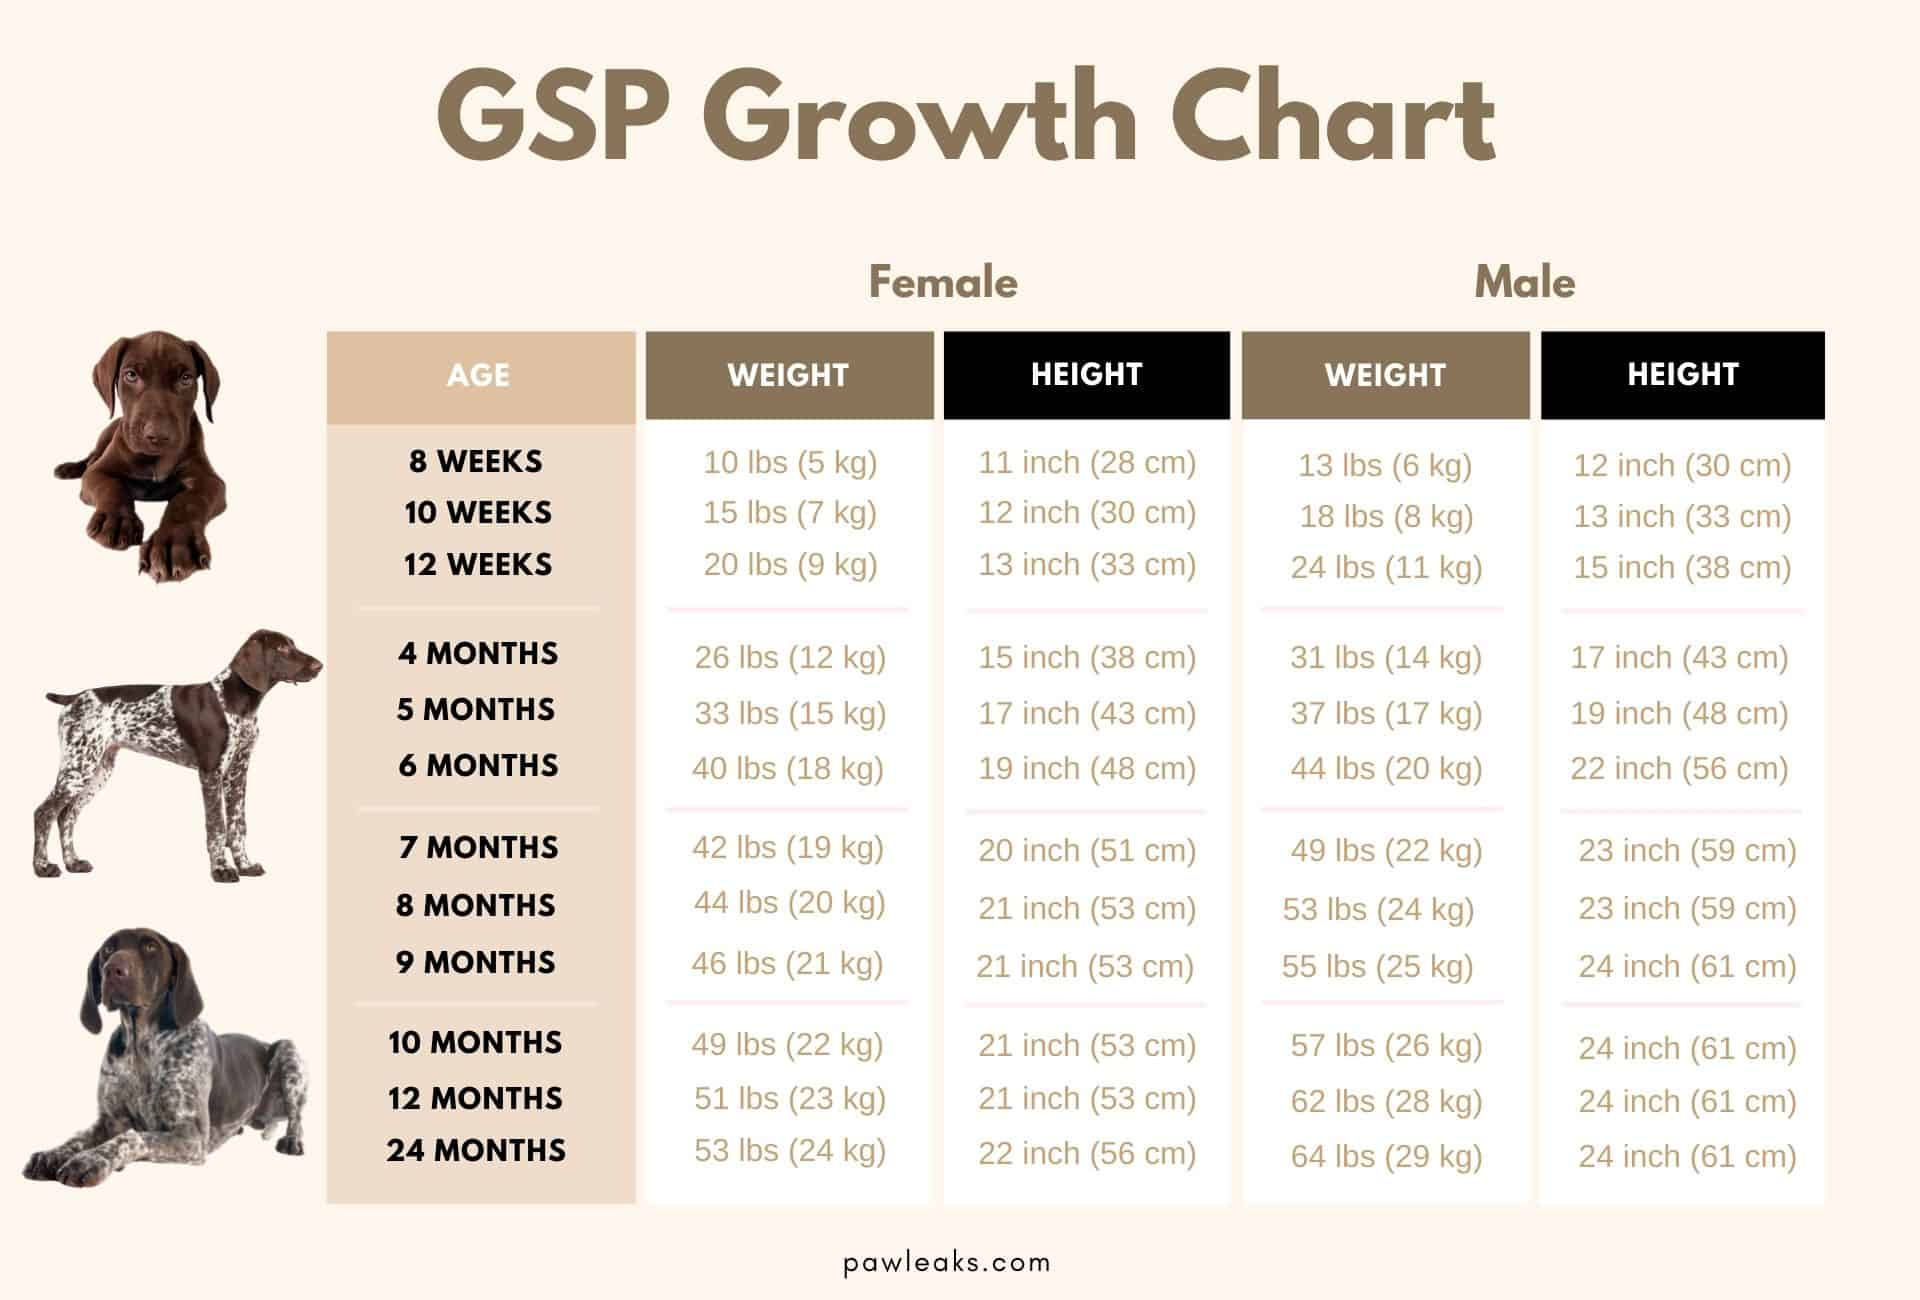 Growth chart for the German Shorthaired Pointer listing the breed's weight and height by age as well as male or female.